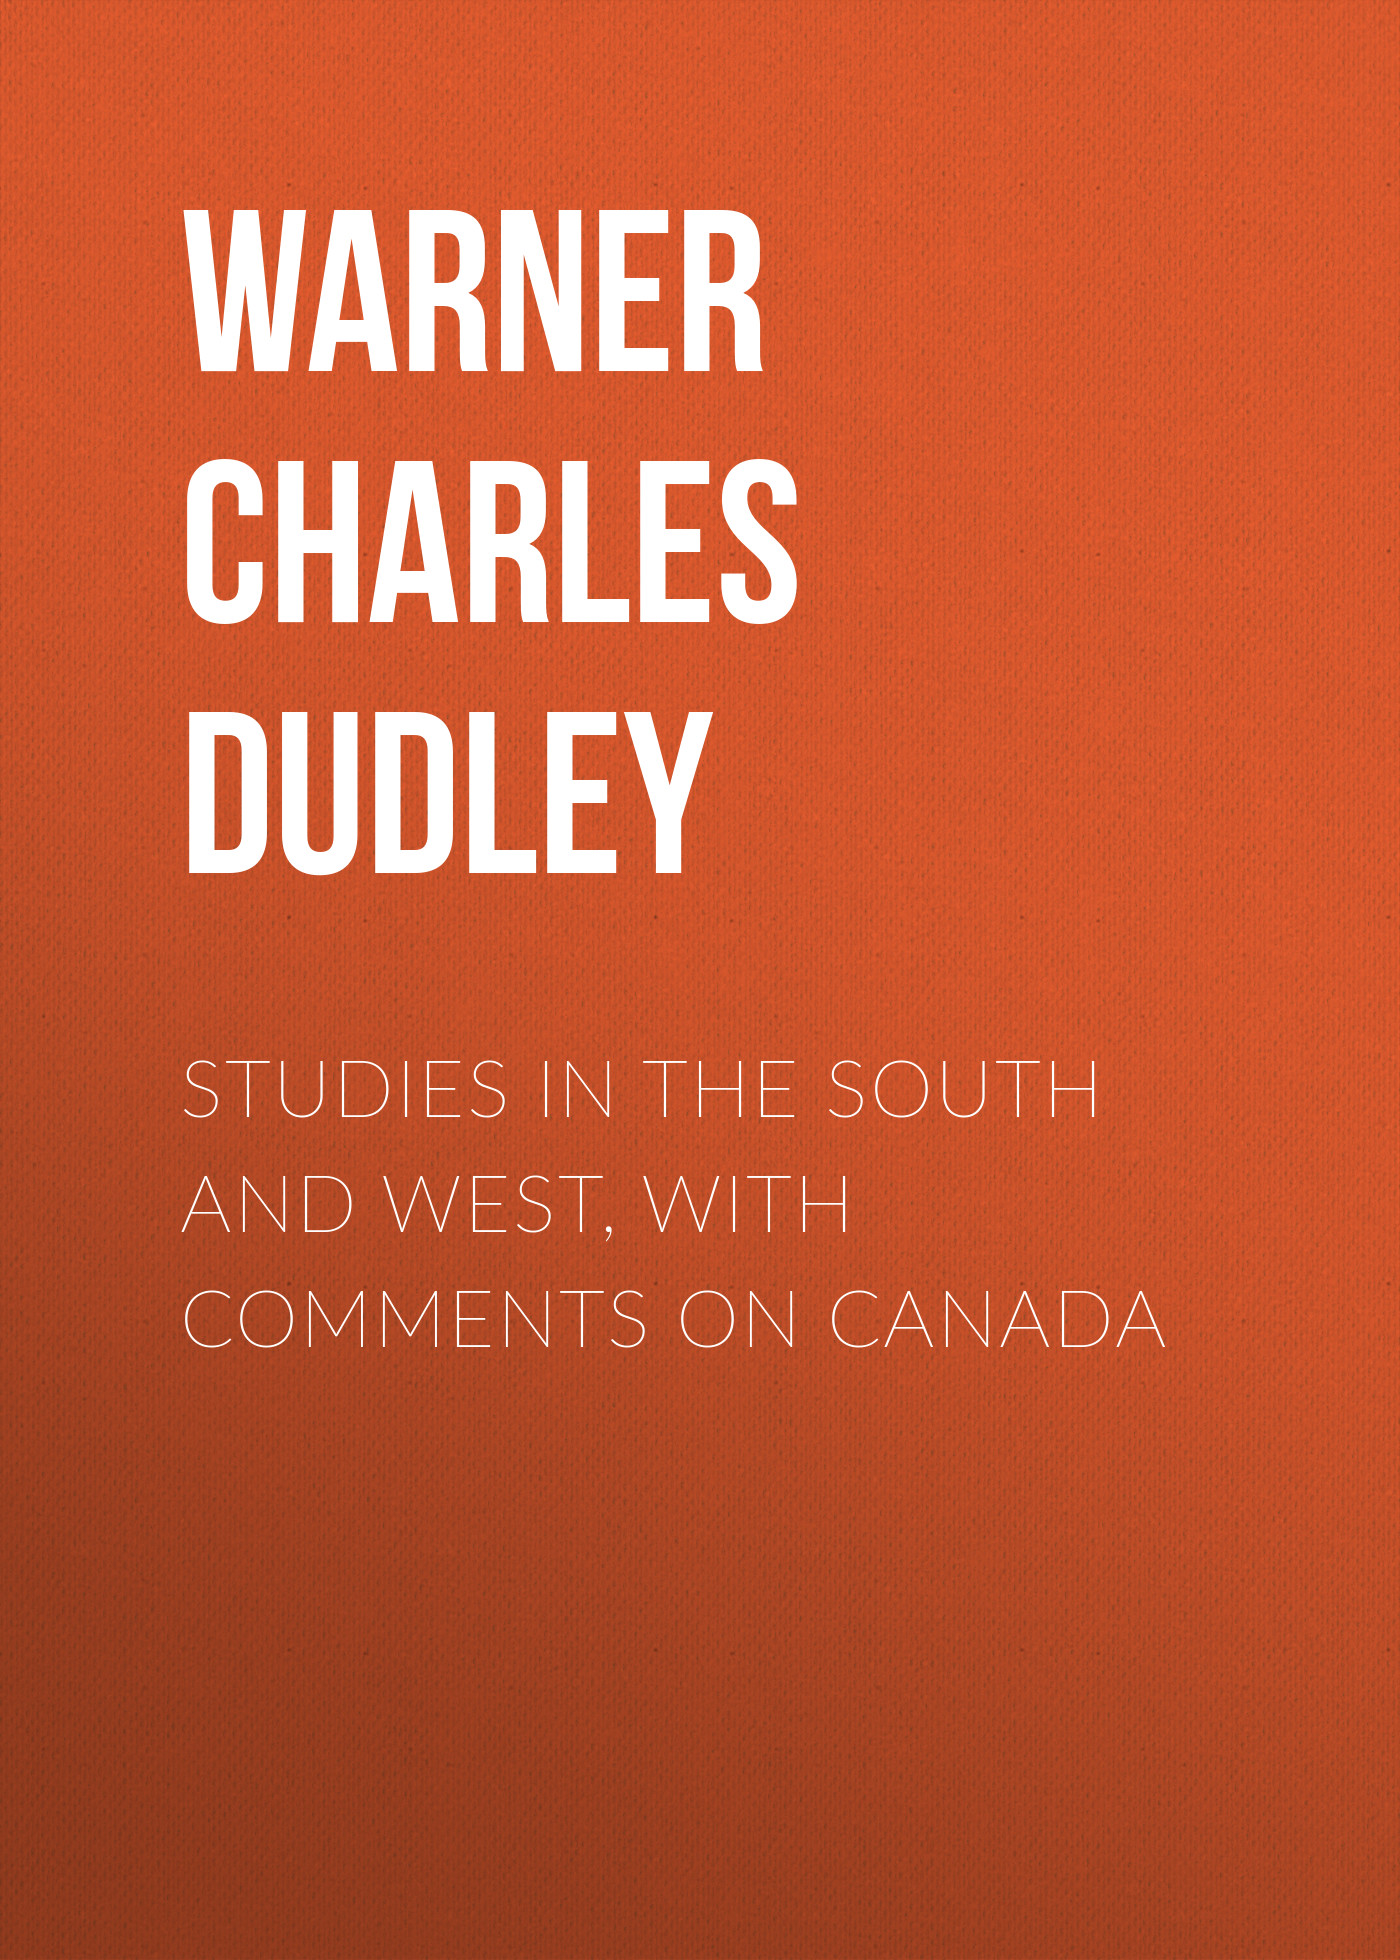 Warner Charles Dudley Studies in The South and West, With Comments on Canada недорго, оригинальная цена